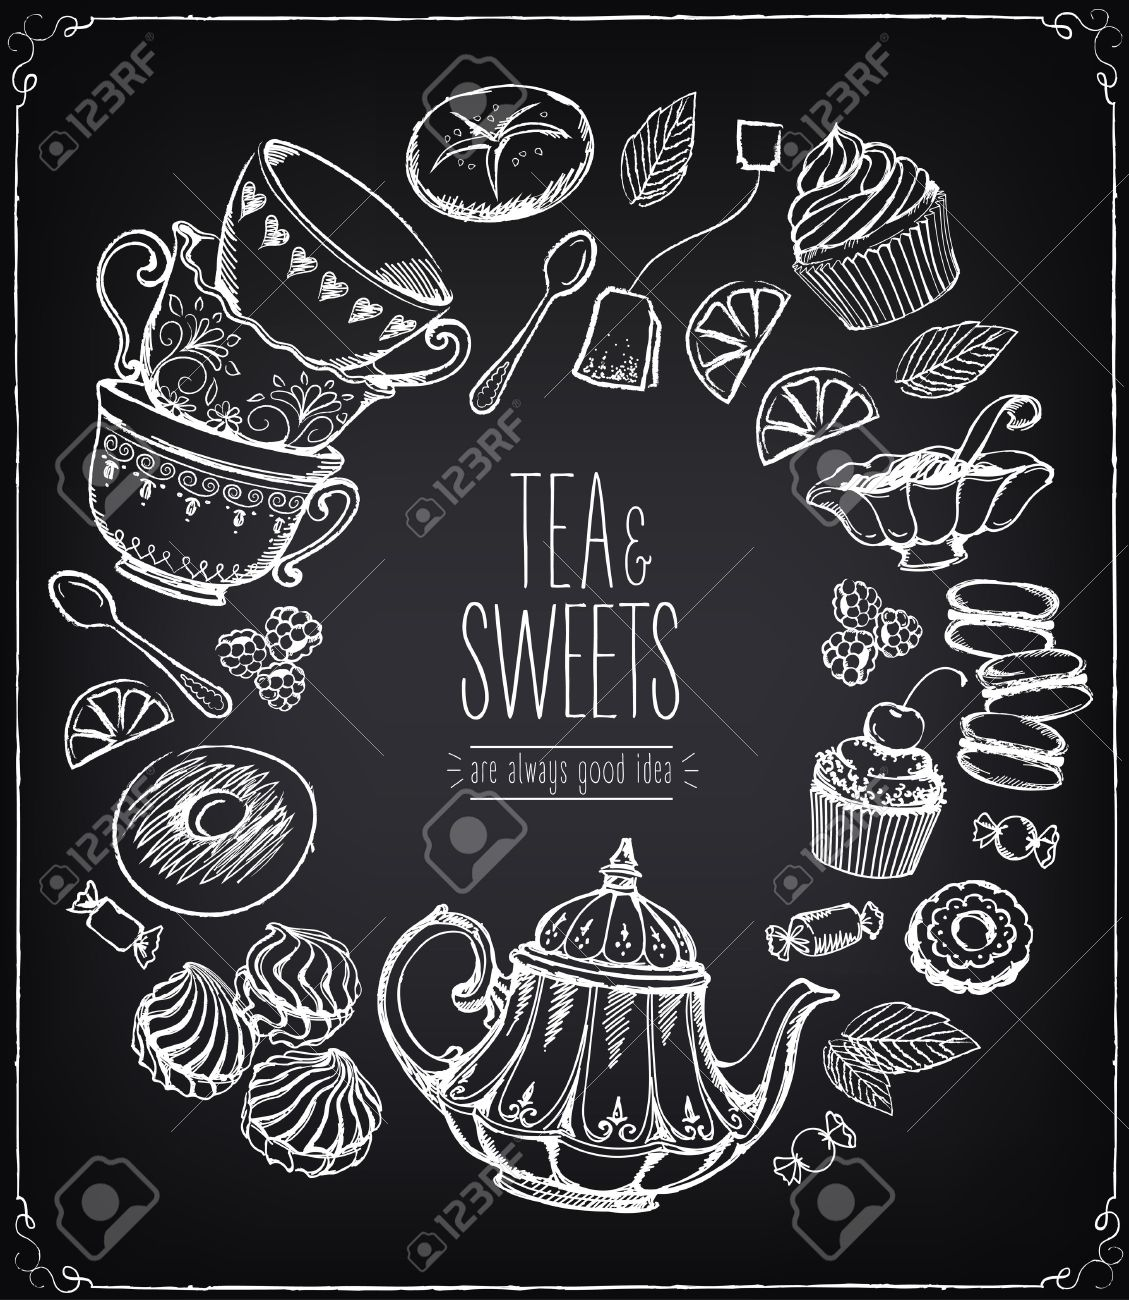 Tea ceremony vector llustration. Tea time, tea leaves, teapot, sweets, bakery, tea tools. Tradition of tea time. Tea time vector symbols. Freehand drawing with imitation of chalk sketch - 52068081